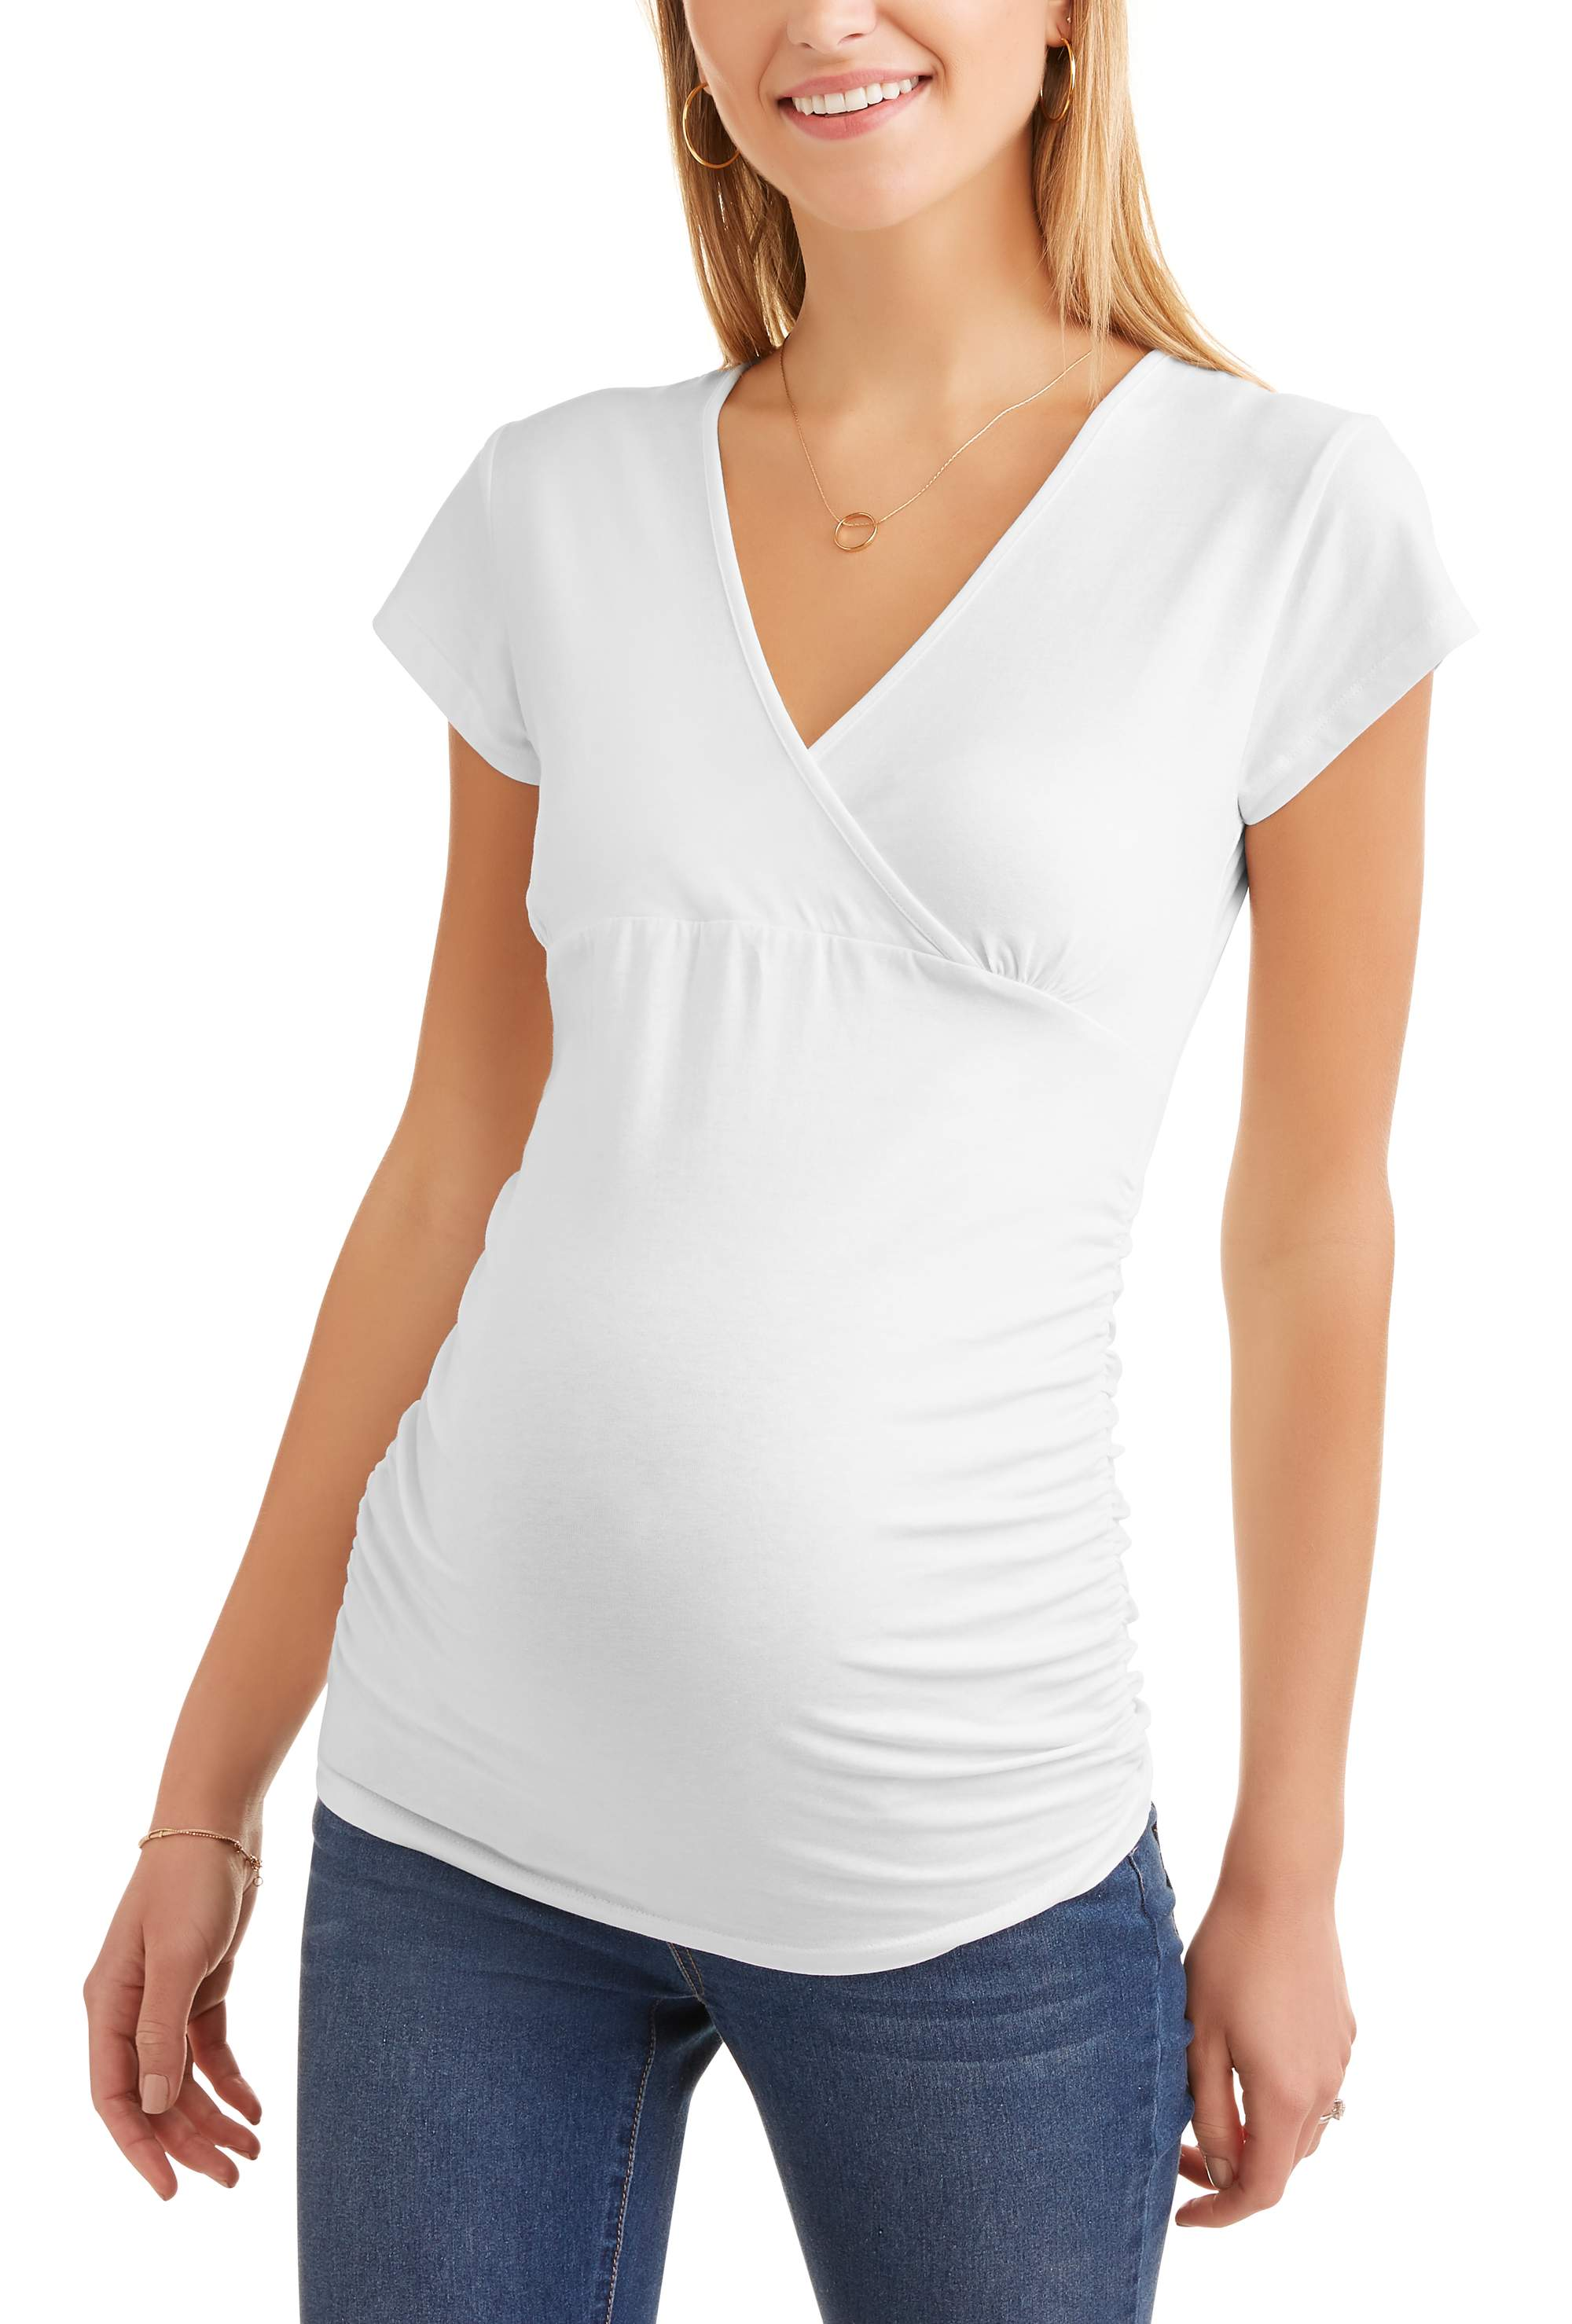 Maternity cap sleeves empire waist top-- Available In Plus Sizes